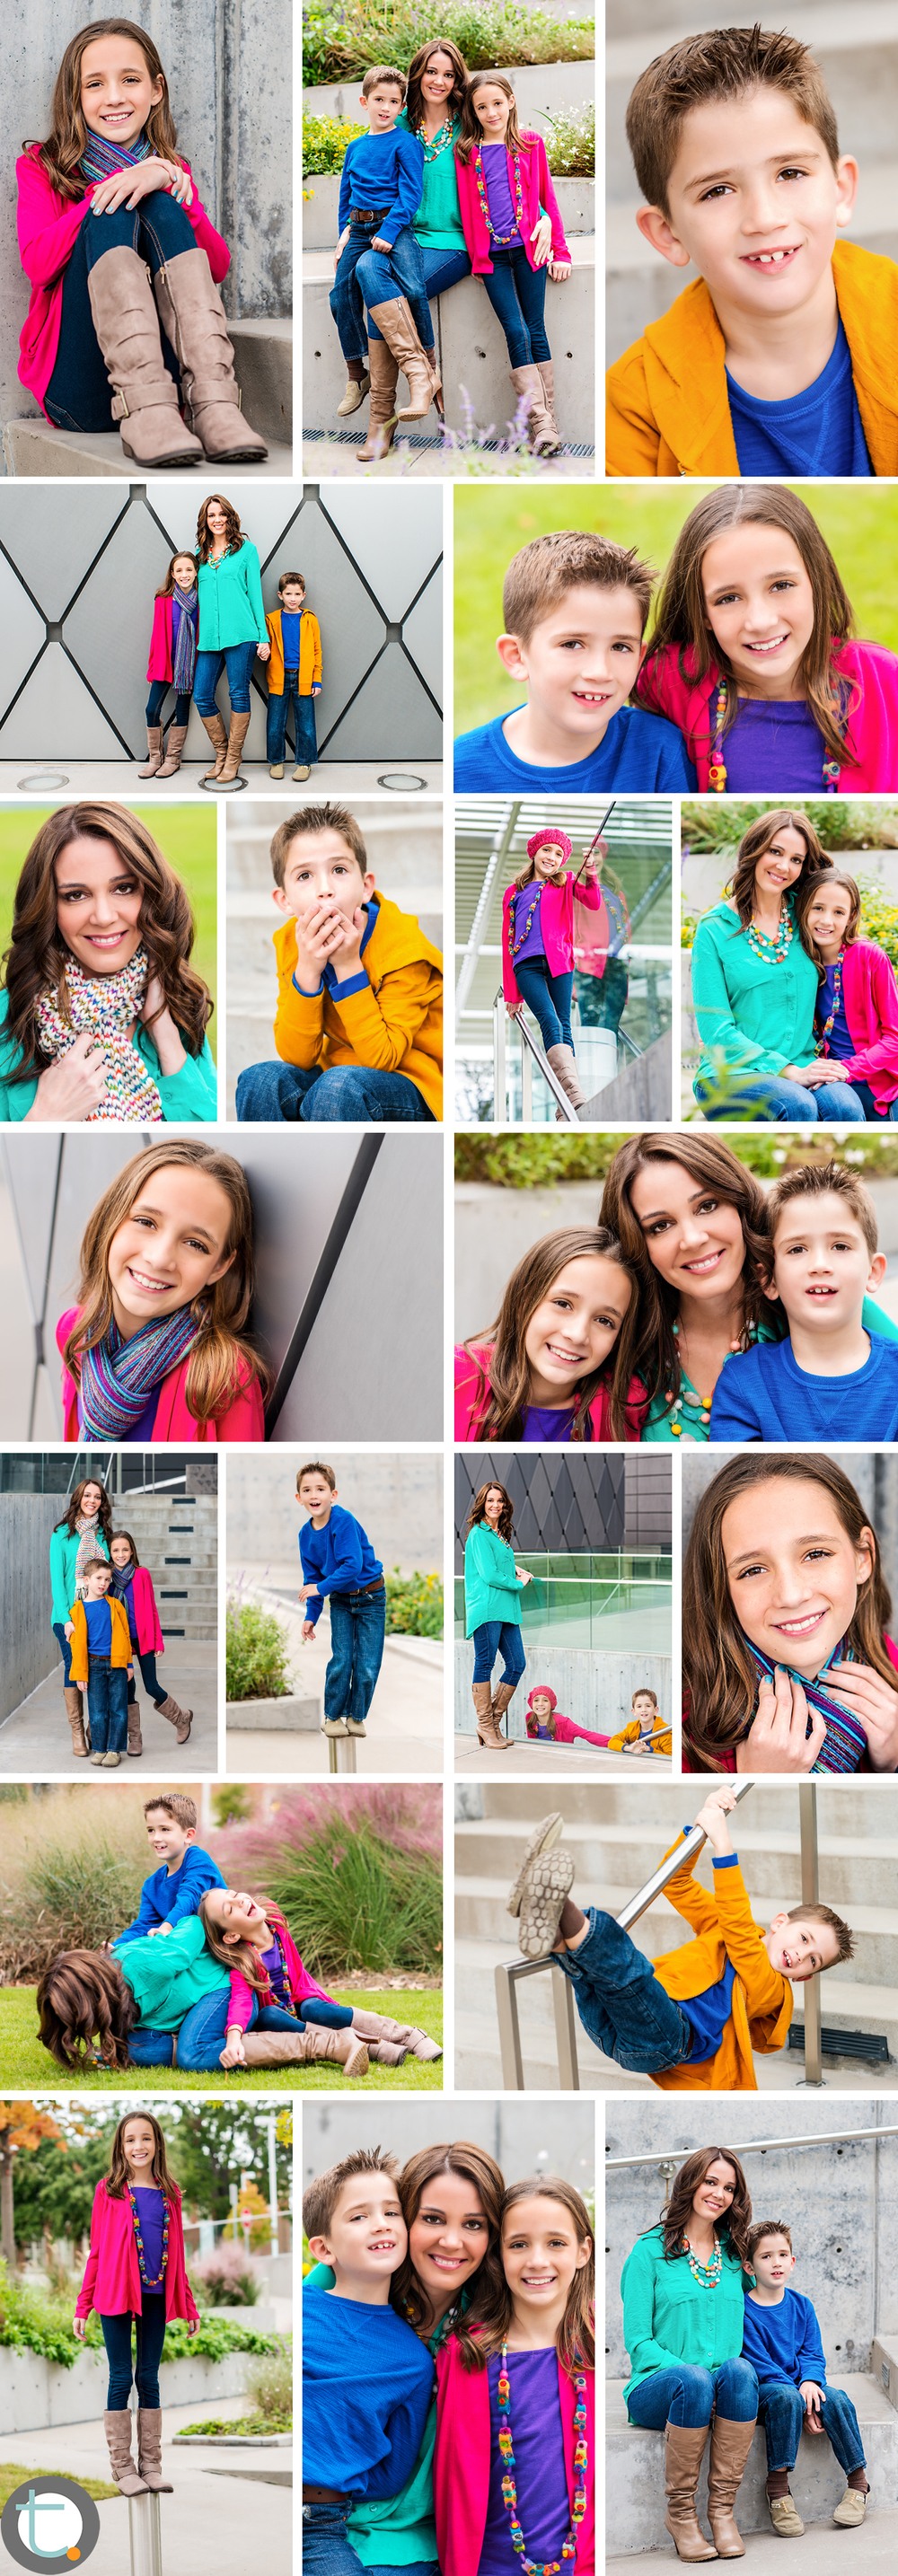 audra_kids_family_arts_district_dallas_color.jpg